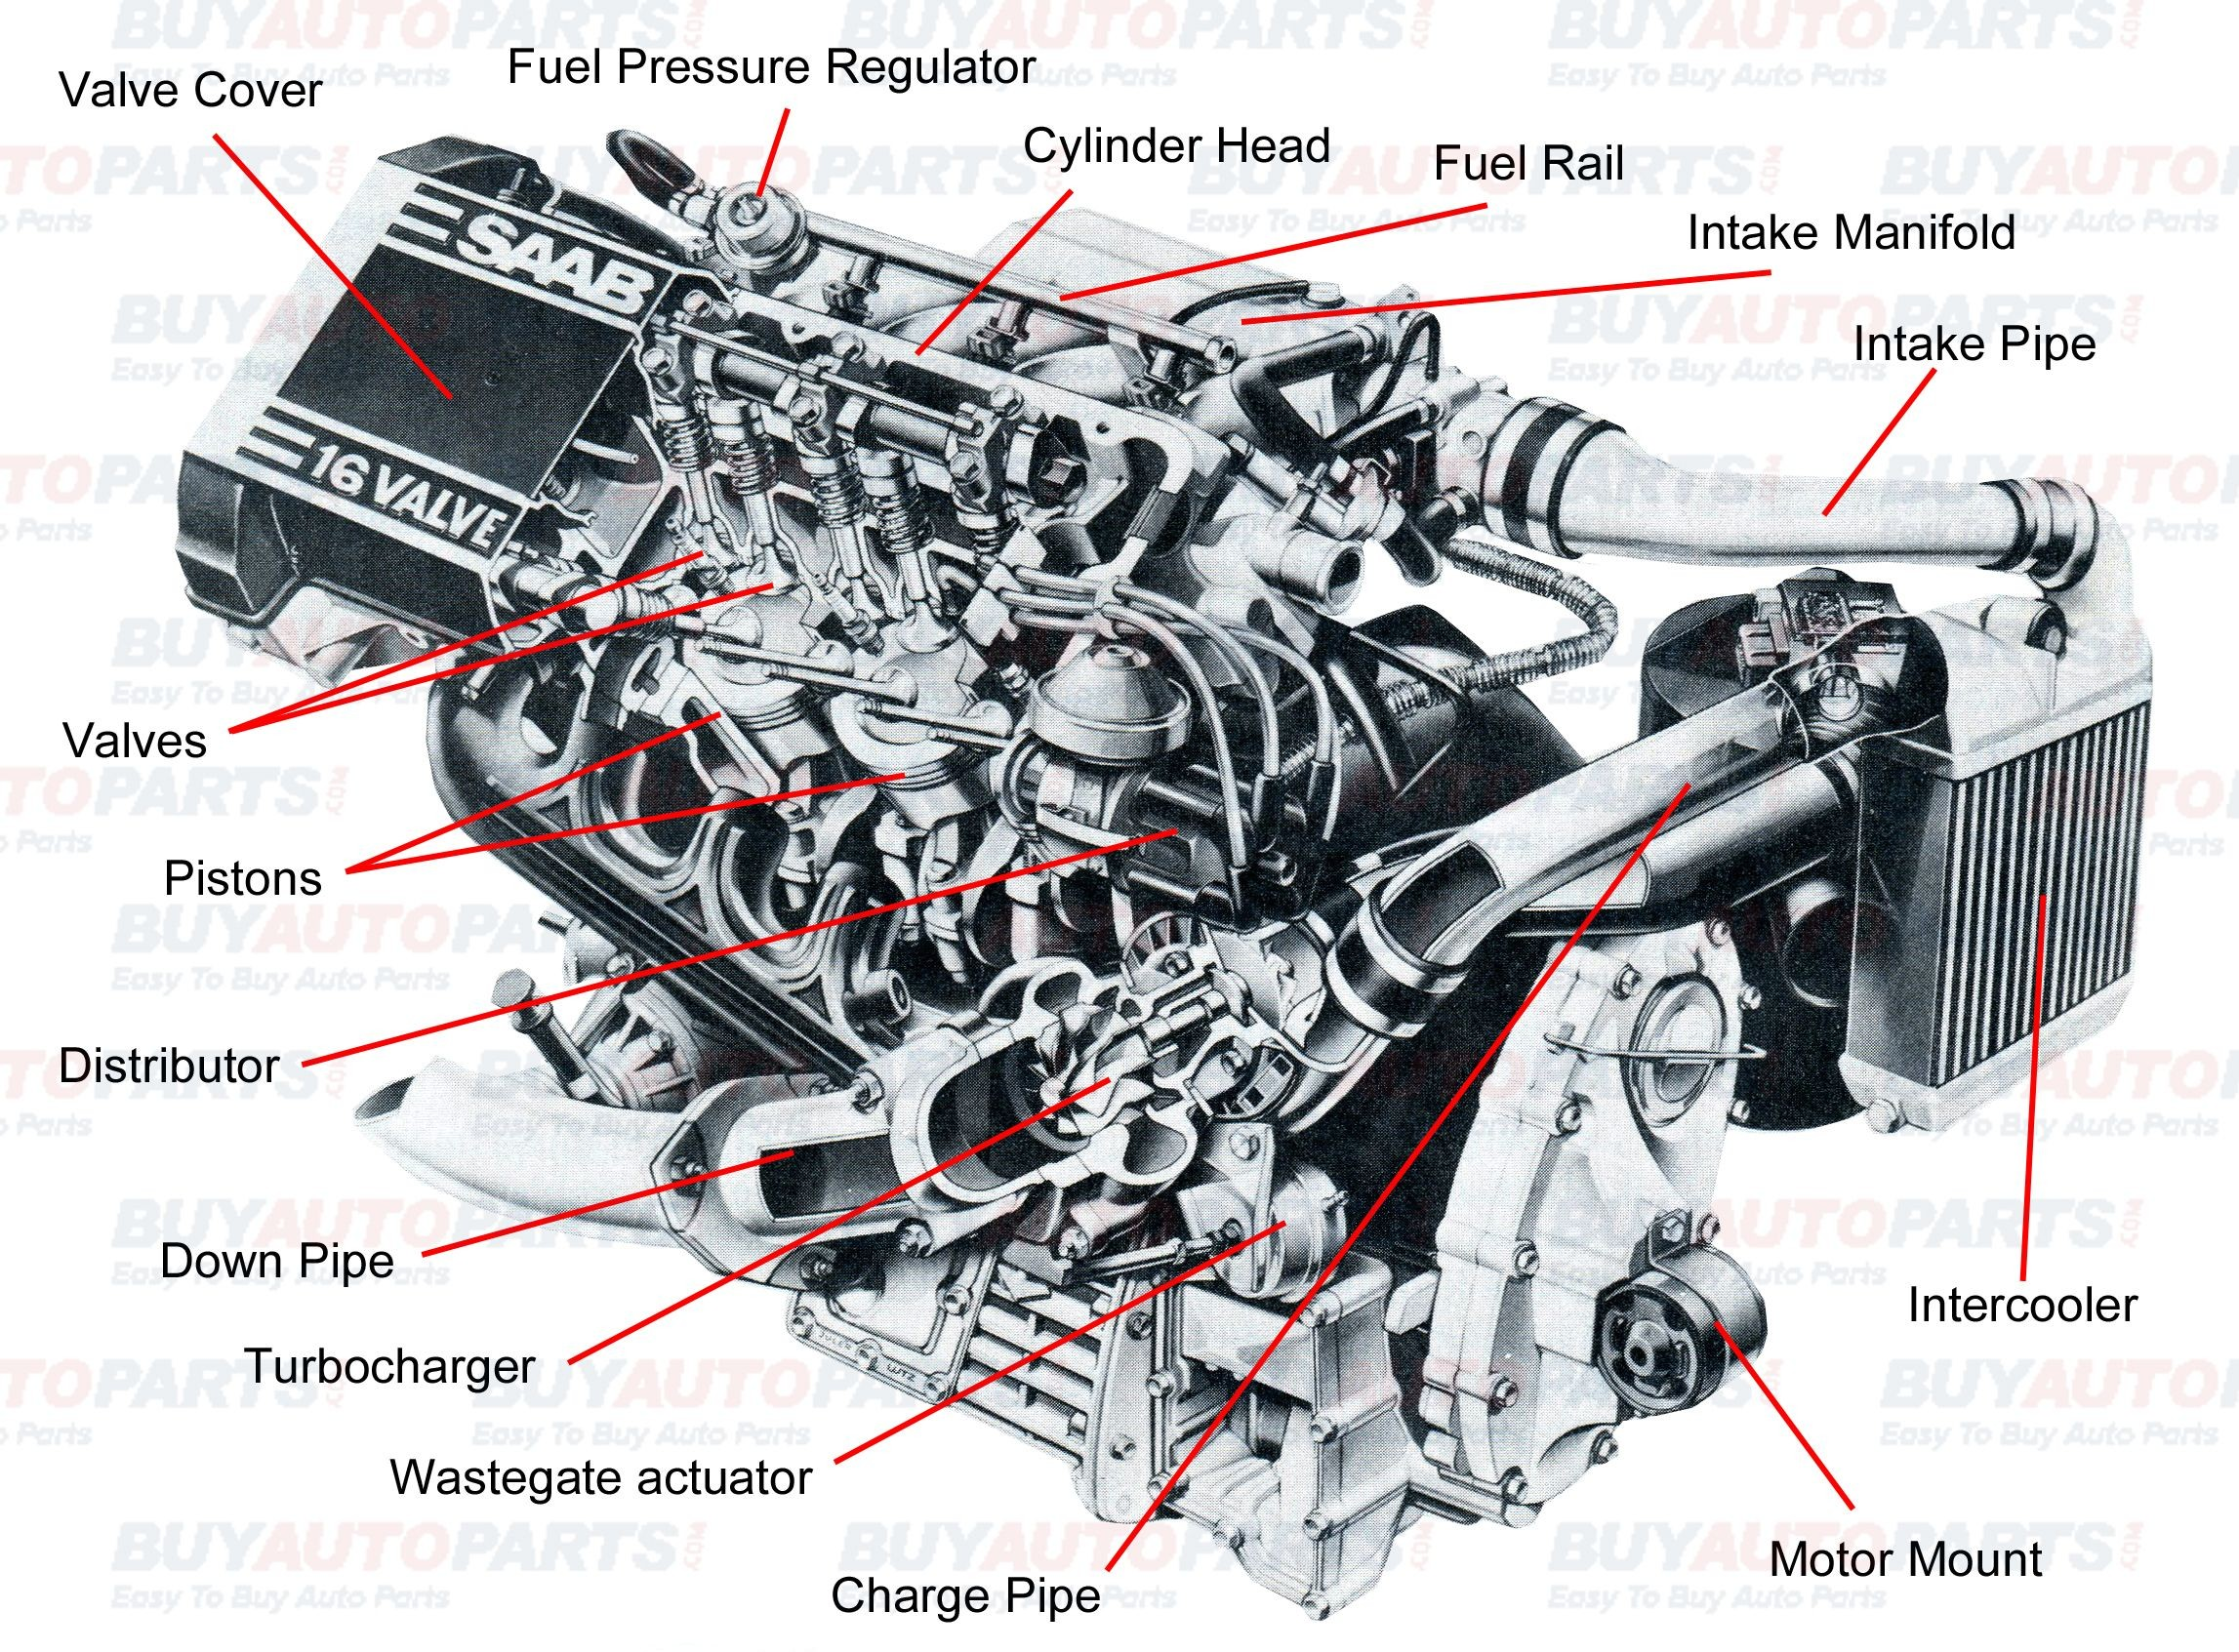 Diagram Of How An Engine Works Pin by Jimmiejanet Testellamwfz On What Does An Engine with Of Diagram Of How An Engine Works Pin by Jimmiejanet Testellamwfz On What Does An Engine with